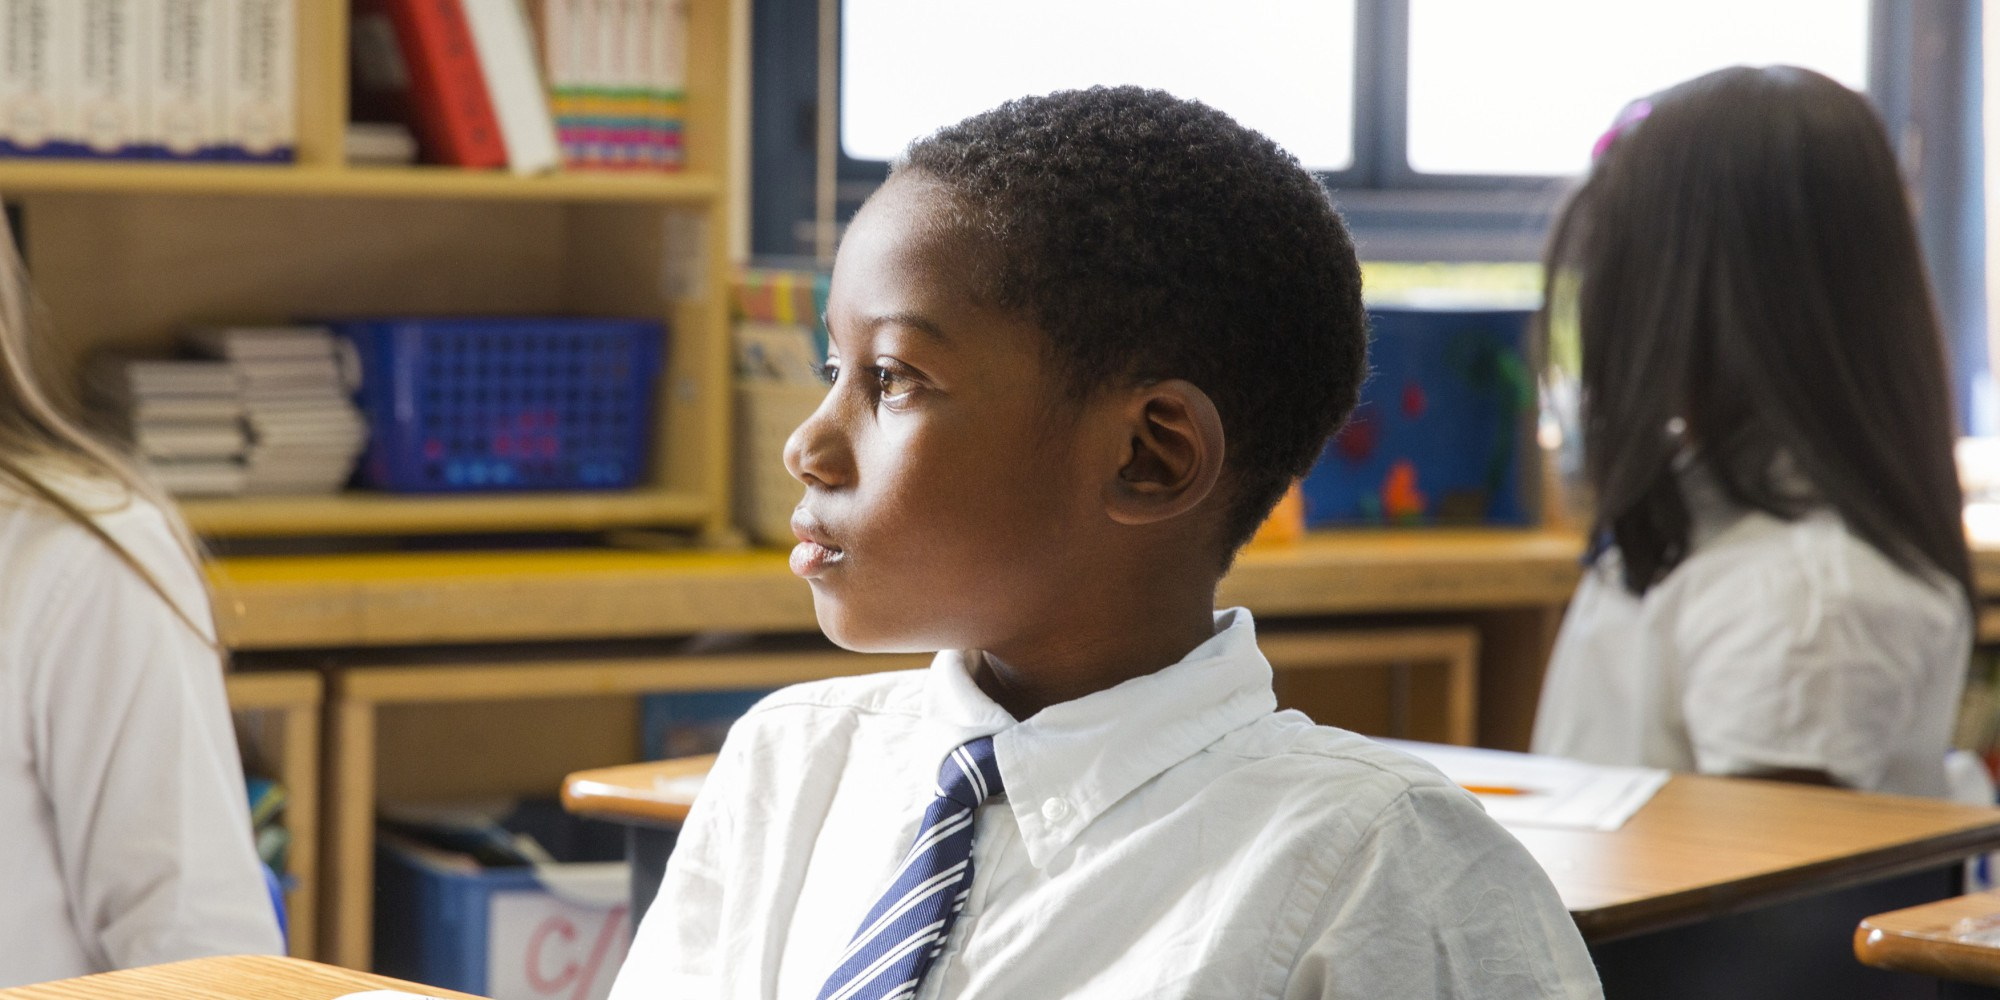 African-American School Boy Sitting at Desk